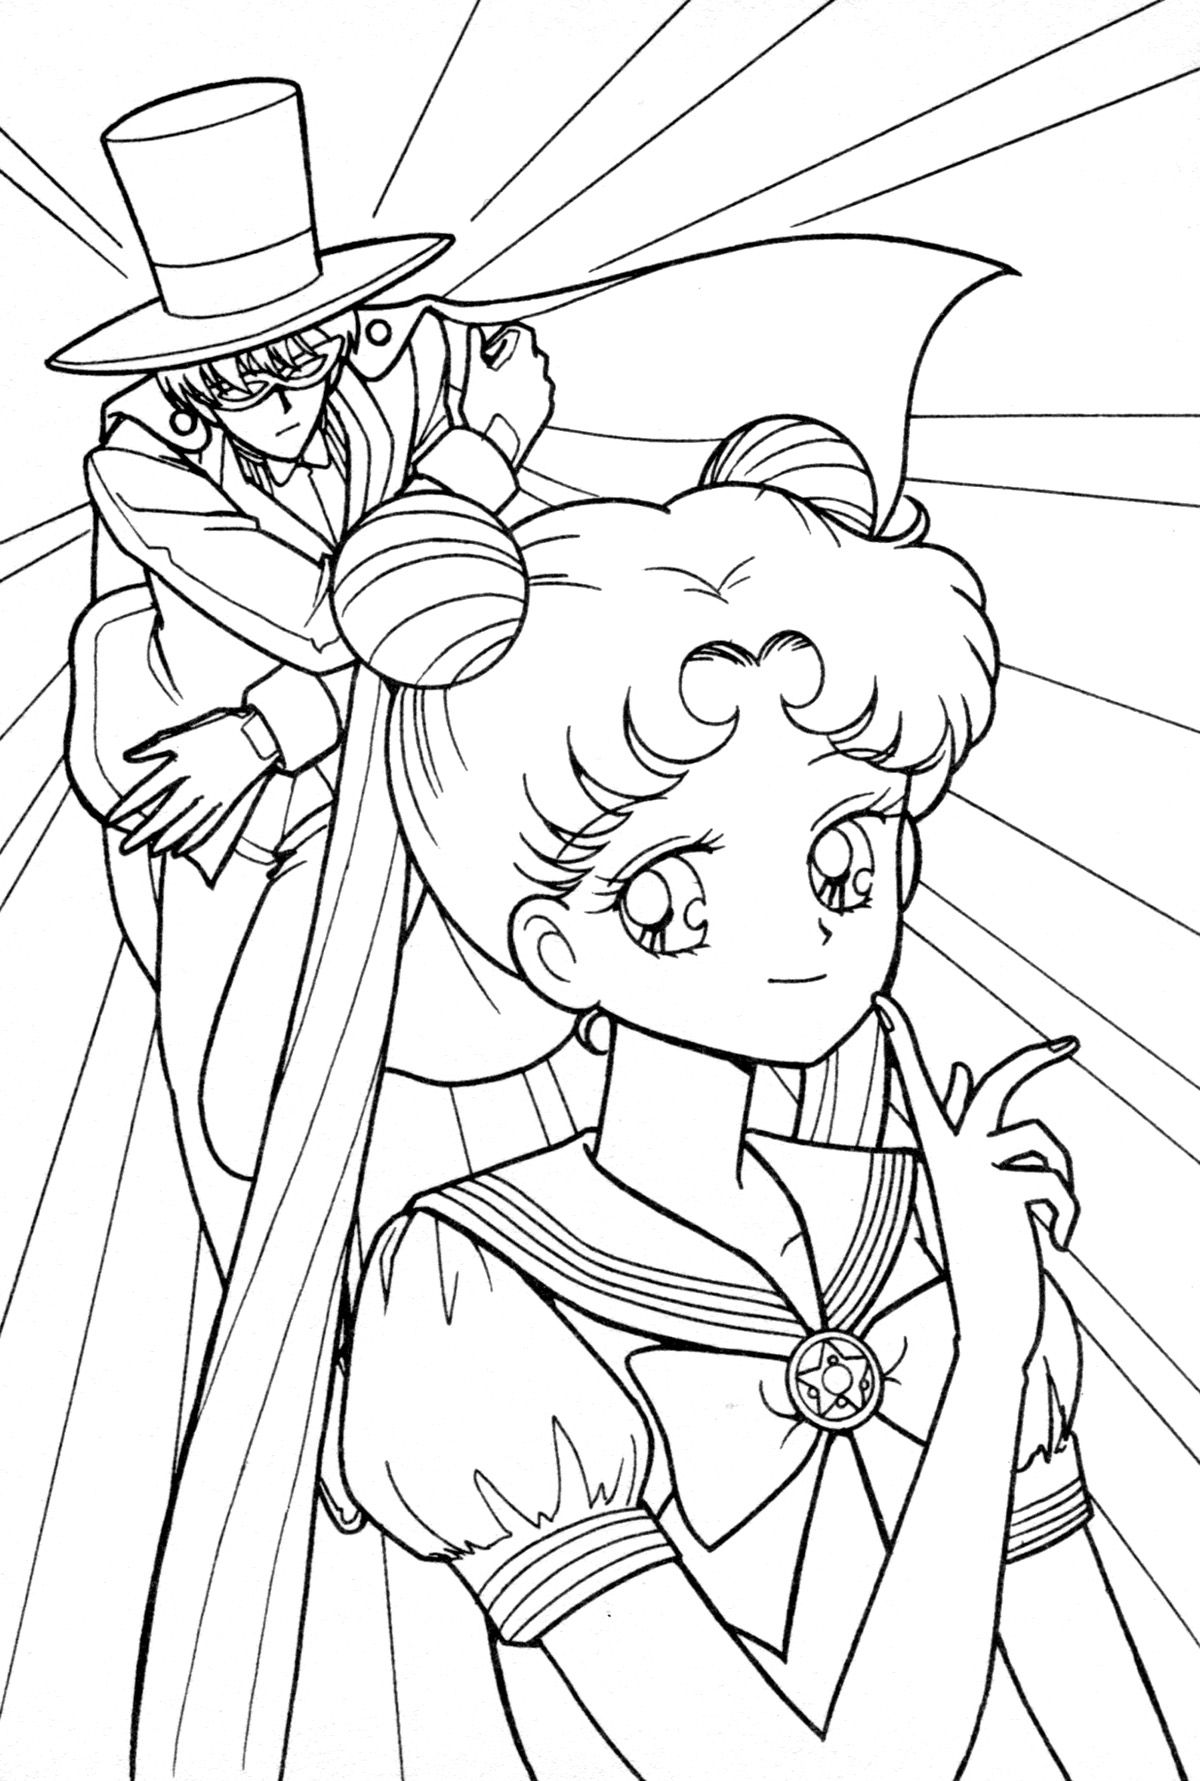 tuxedo kamen and tsukino usagi coloring page sailormoon